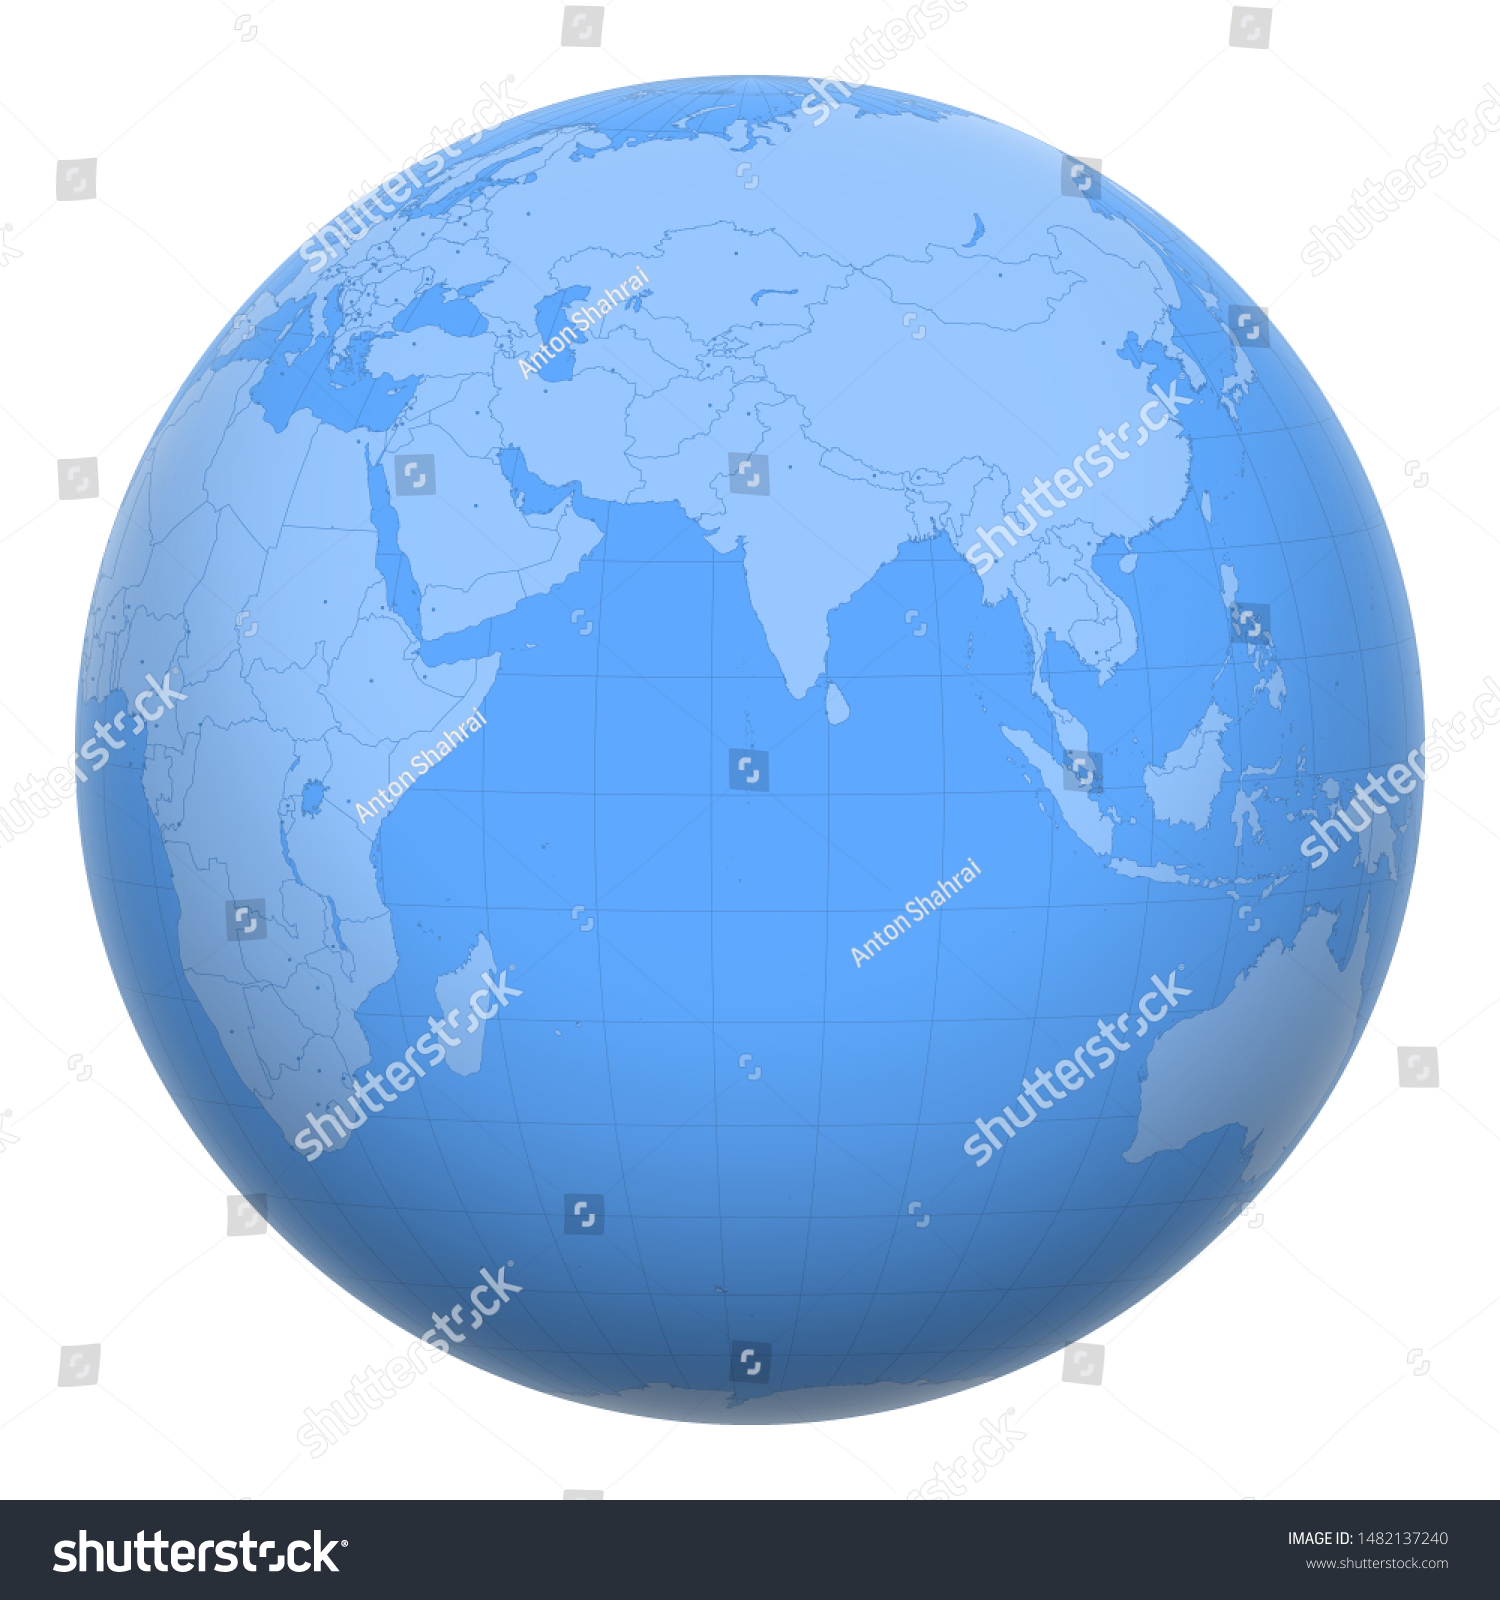 Image of: Maldives On Globe Earth Centered Location Stock Vector Royalty Free 1482137240